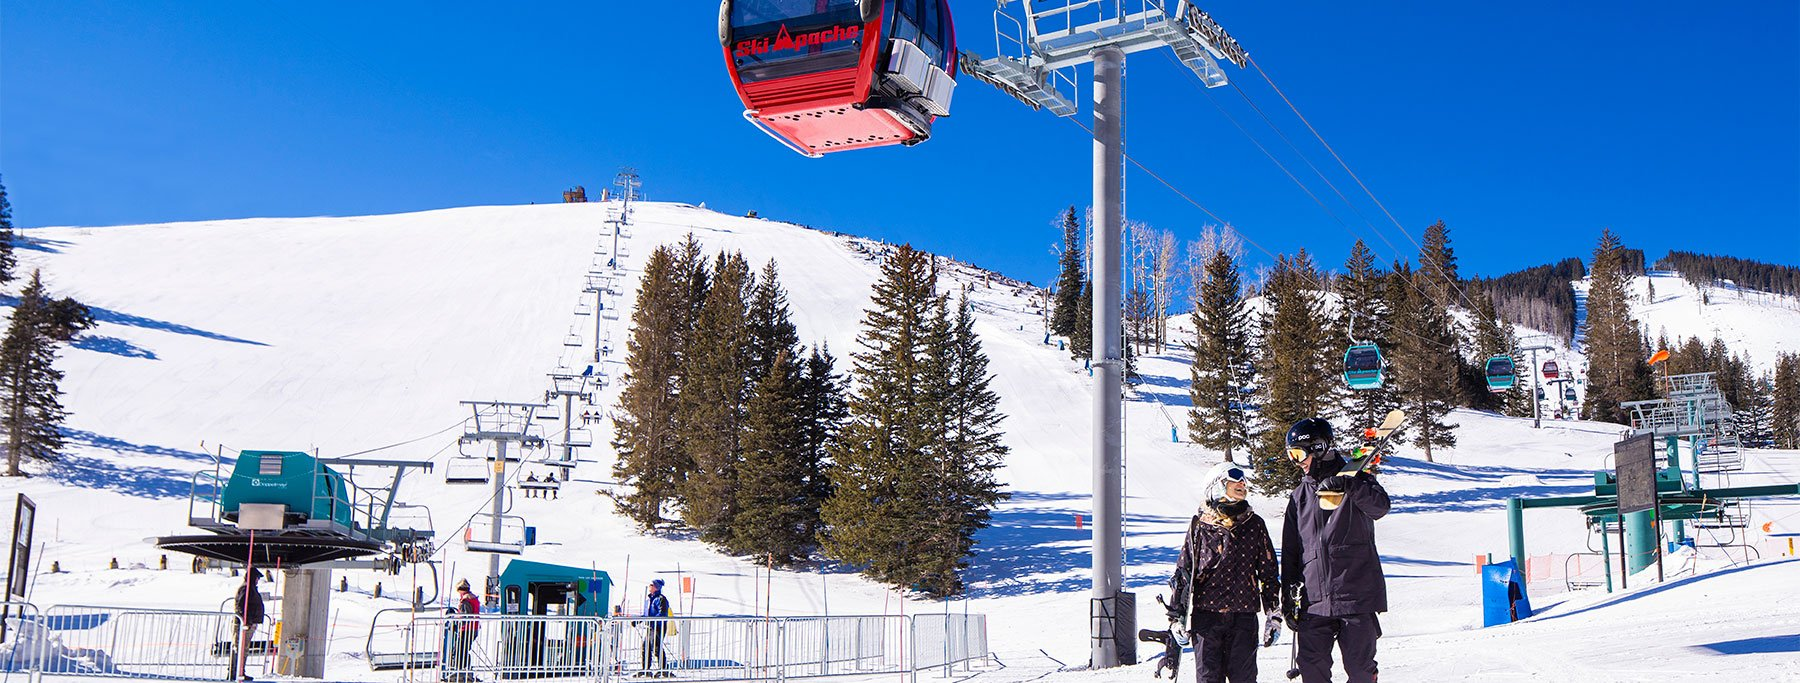 Best Ski Resorts in New Mexico: 6 Reasons to Visit Ski Apache